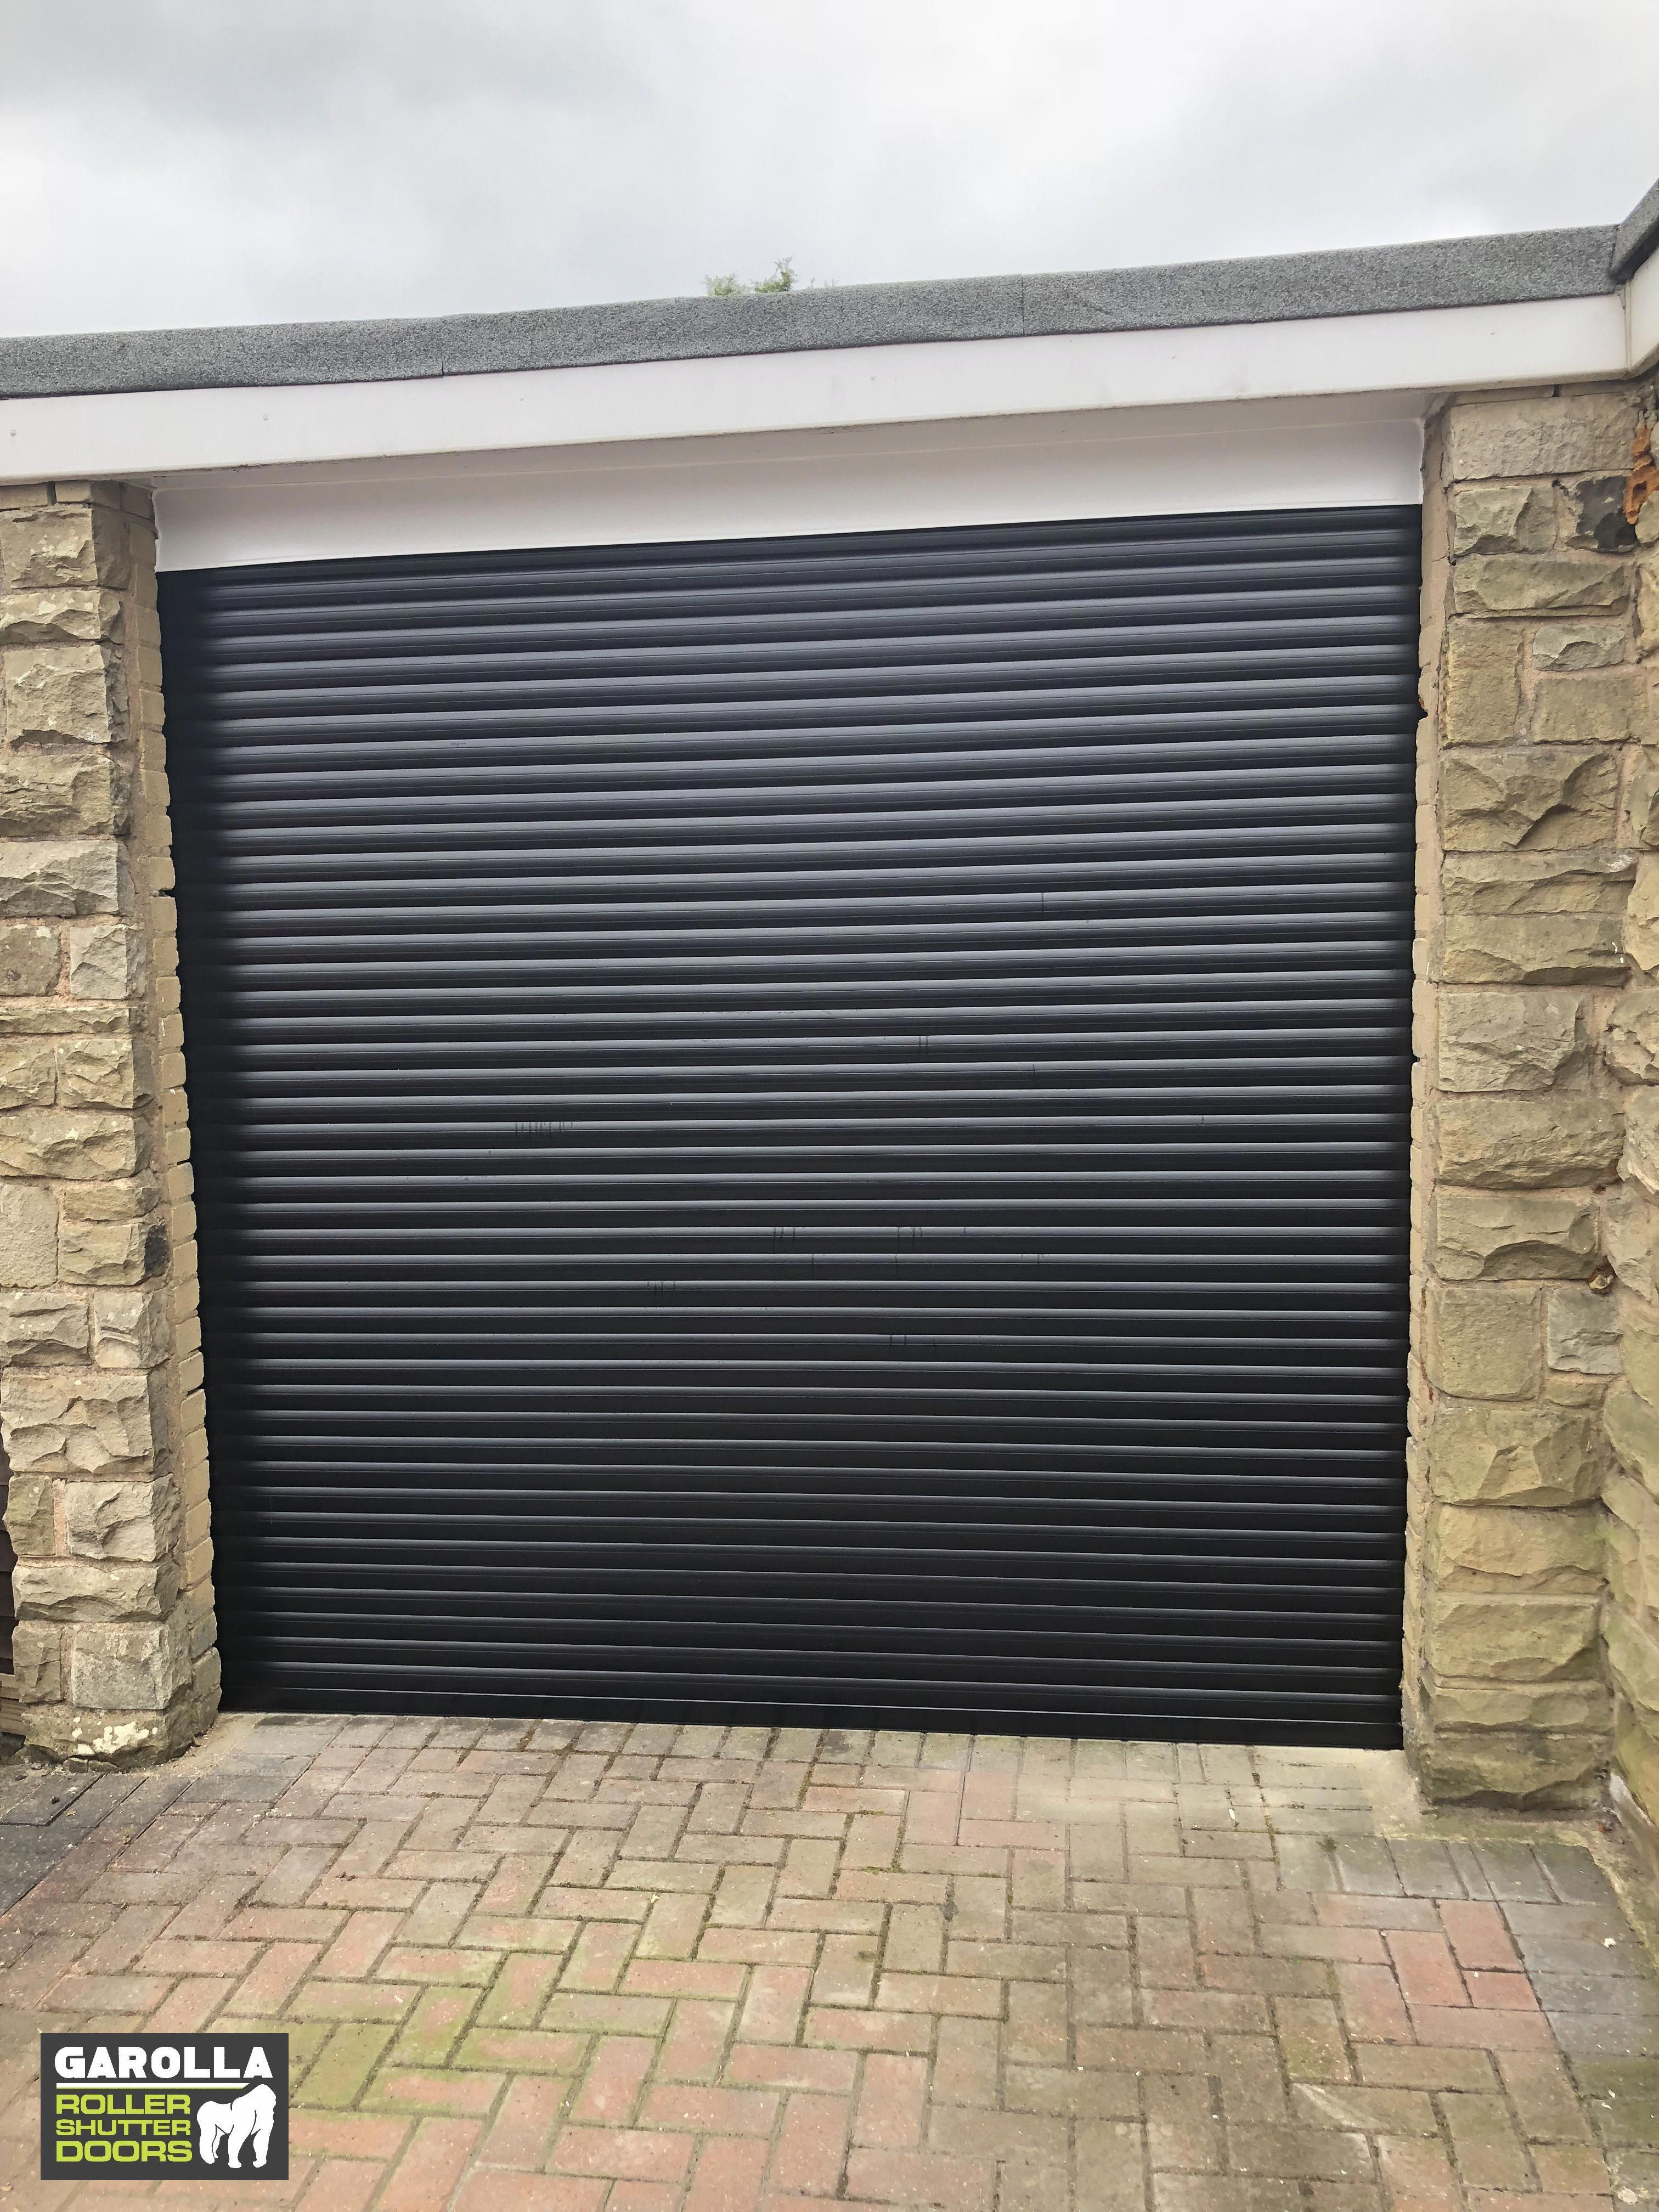 This Type Of Photo Is Certainly An Inspirational And Brilliant Idea Contemporarygaragedoor In 2020 Contemporary Garage Doors Roller Doors Garage Door Types